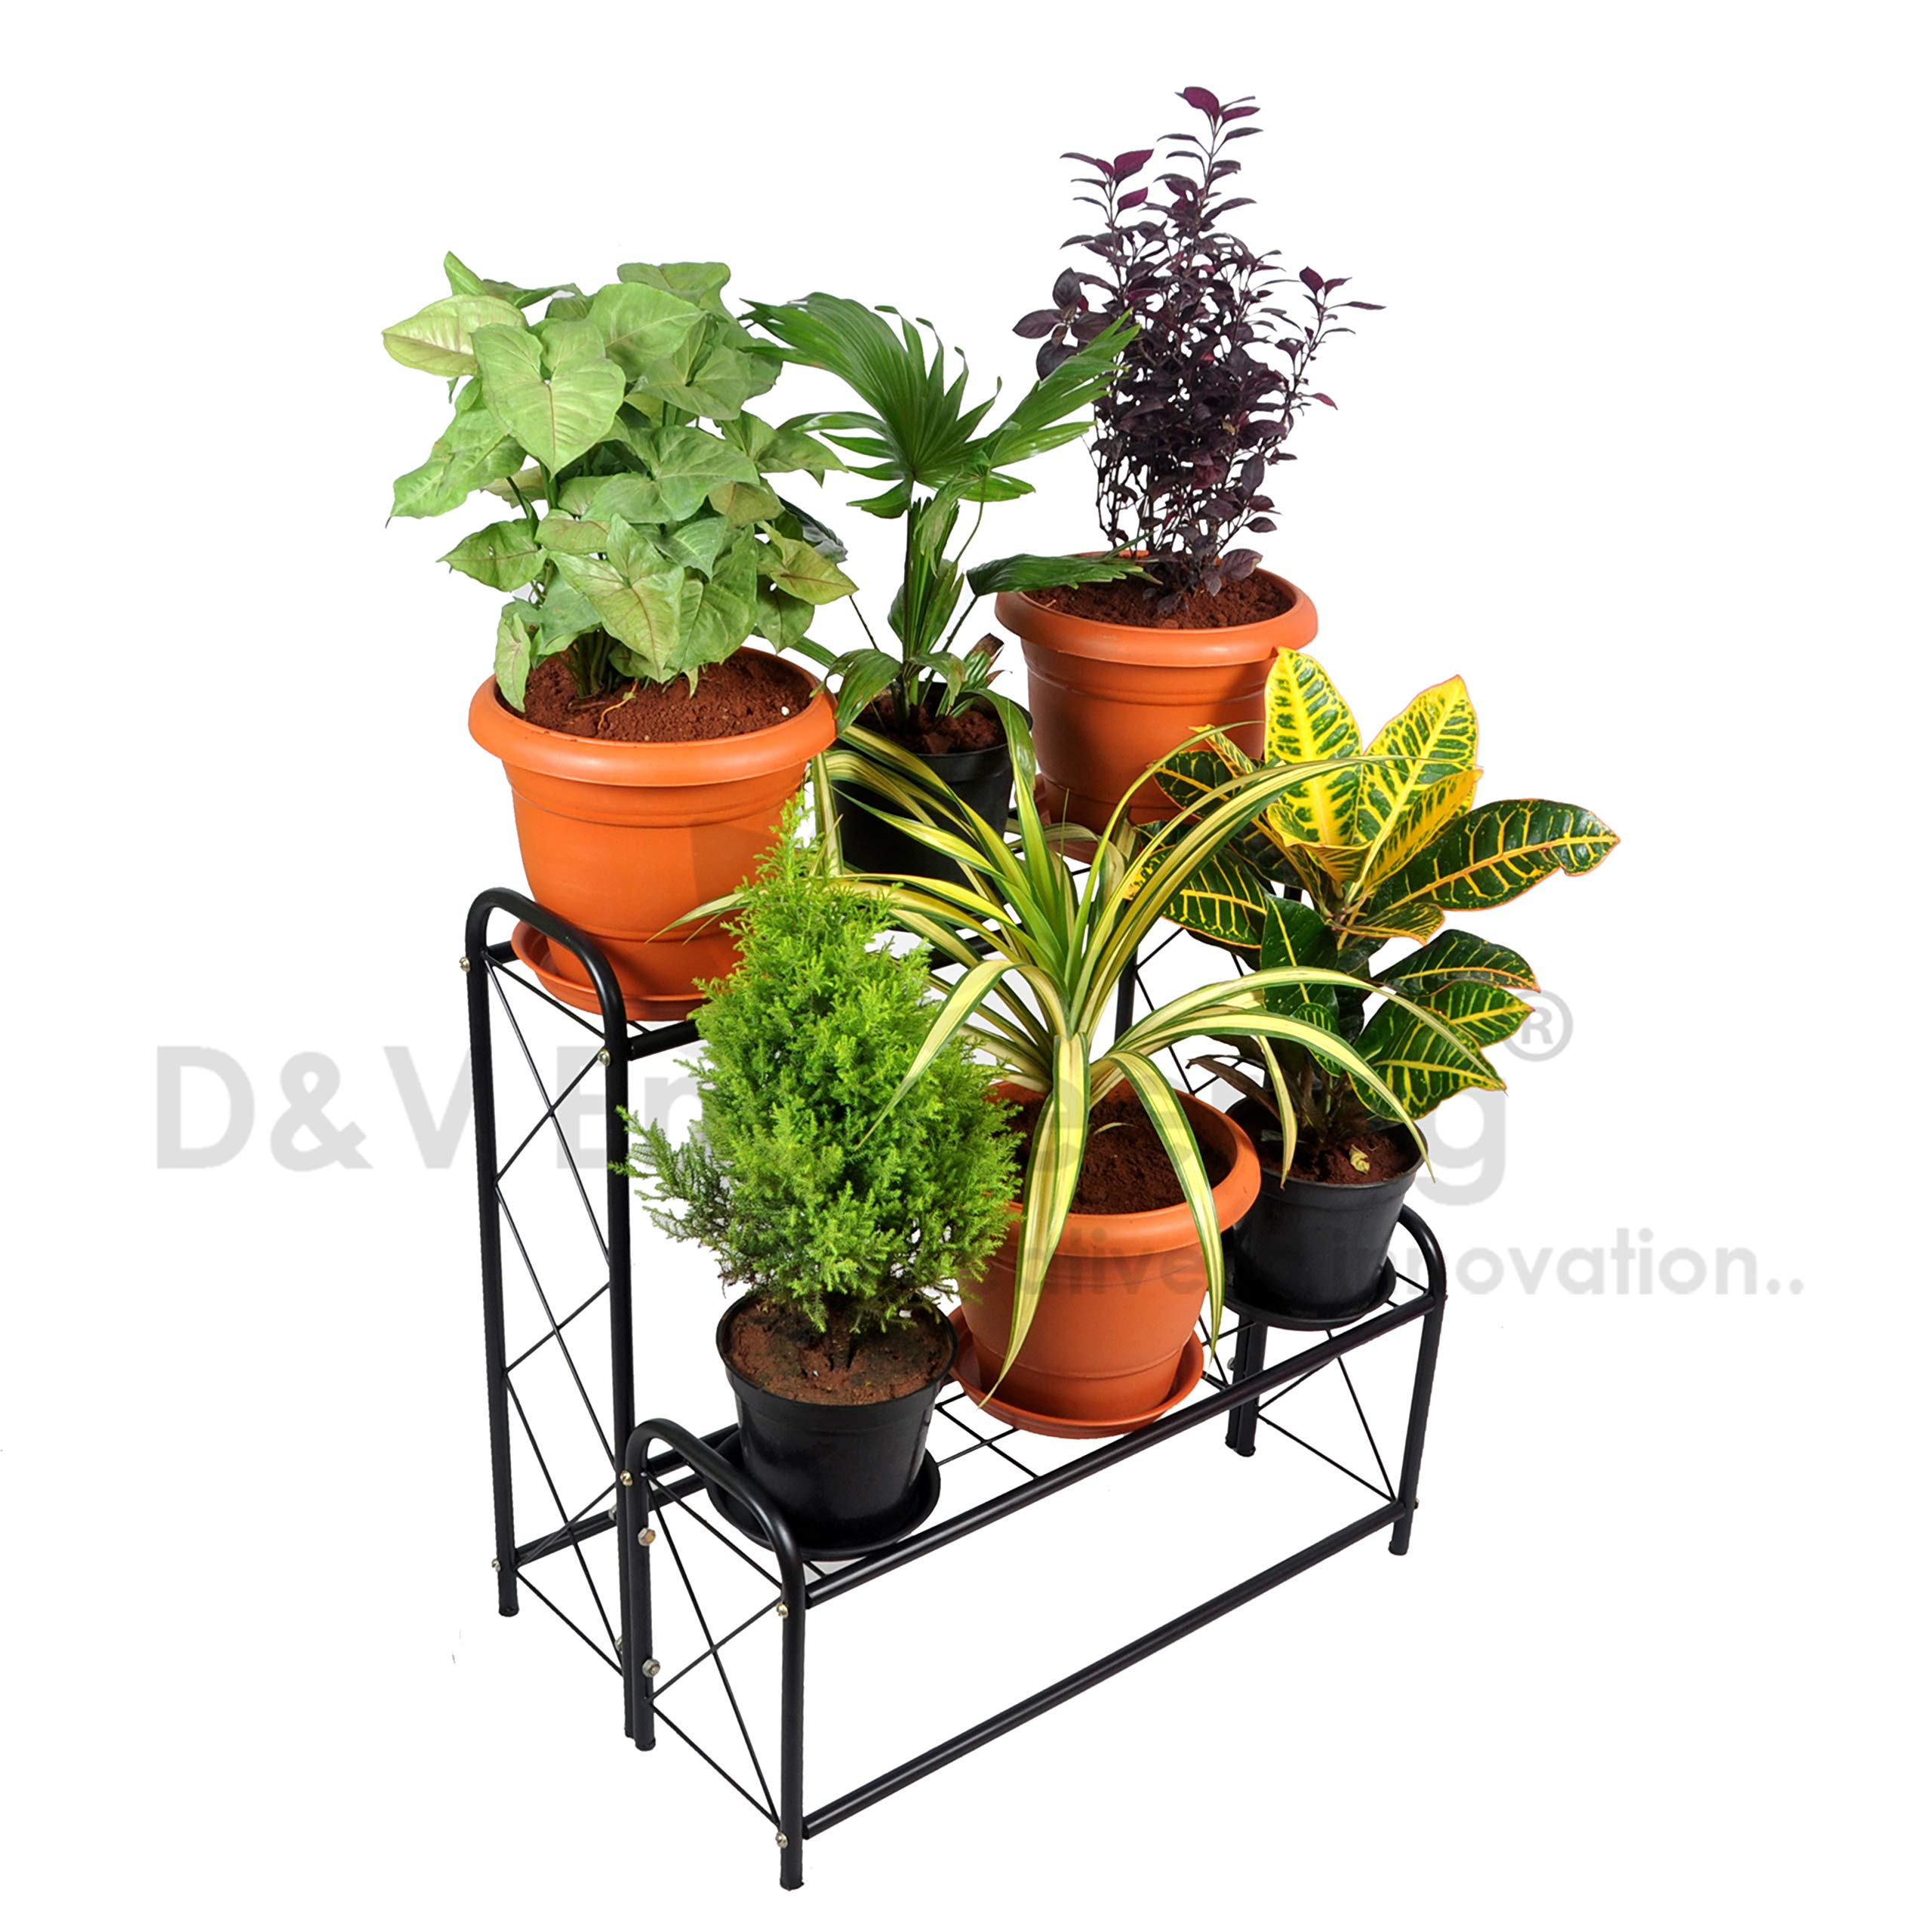 D&V Engineering Metal 2-Step, 6 Planter Indoor/Outdoor Flower Pot Stand, Plant Stand, Kitchen Shelf Stand for Home Decor, Office, Garden, Balcony Decor (Black, 6 Pot Step Type) product image